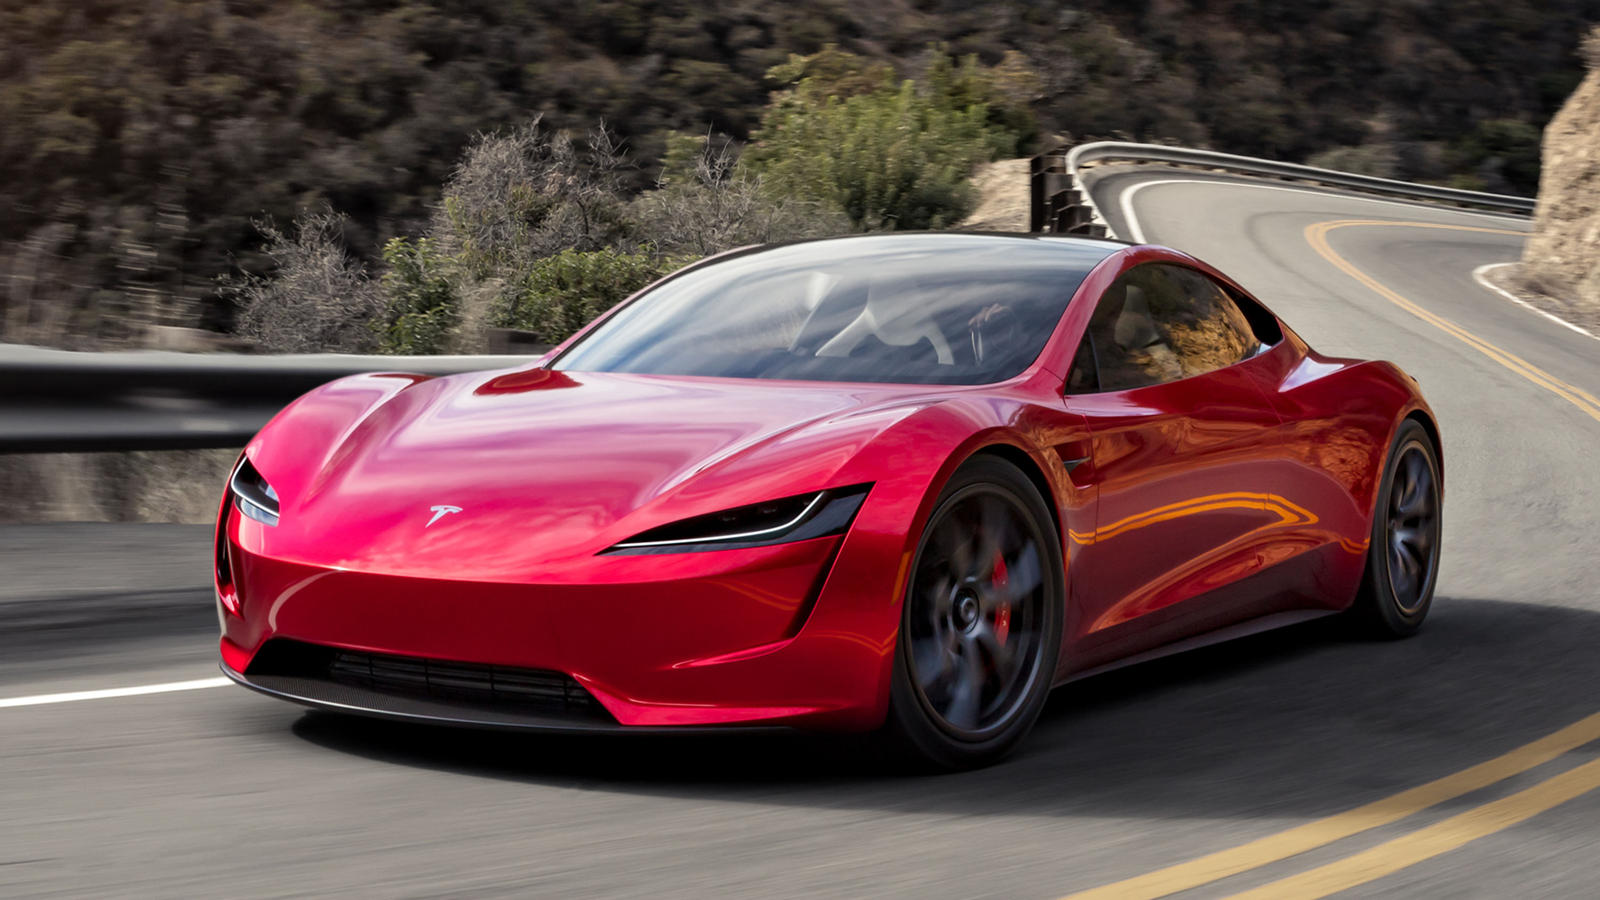 2020 Tesla Roadster Review Trims Specs Price New Interior Features Exterior Design And Specifications Carbuzz